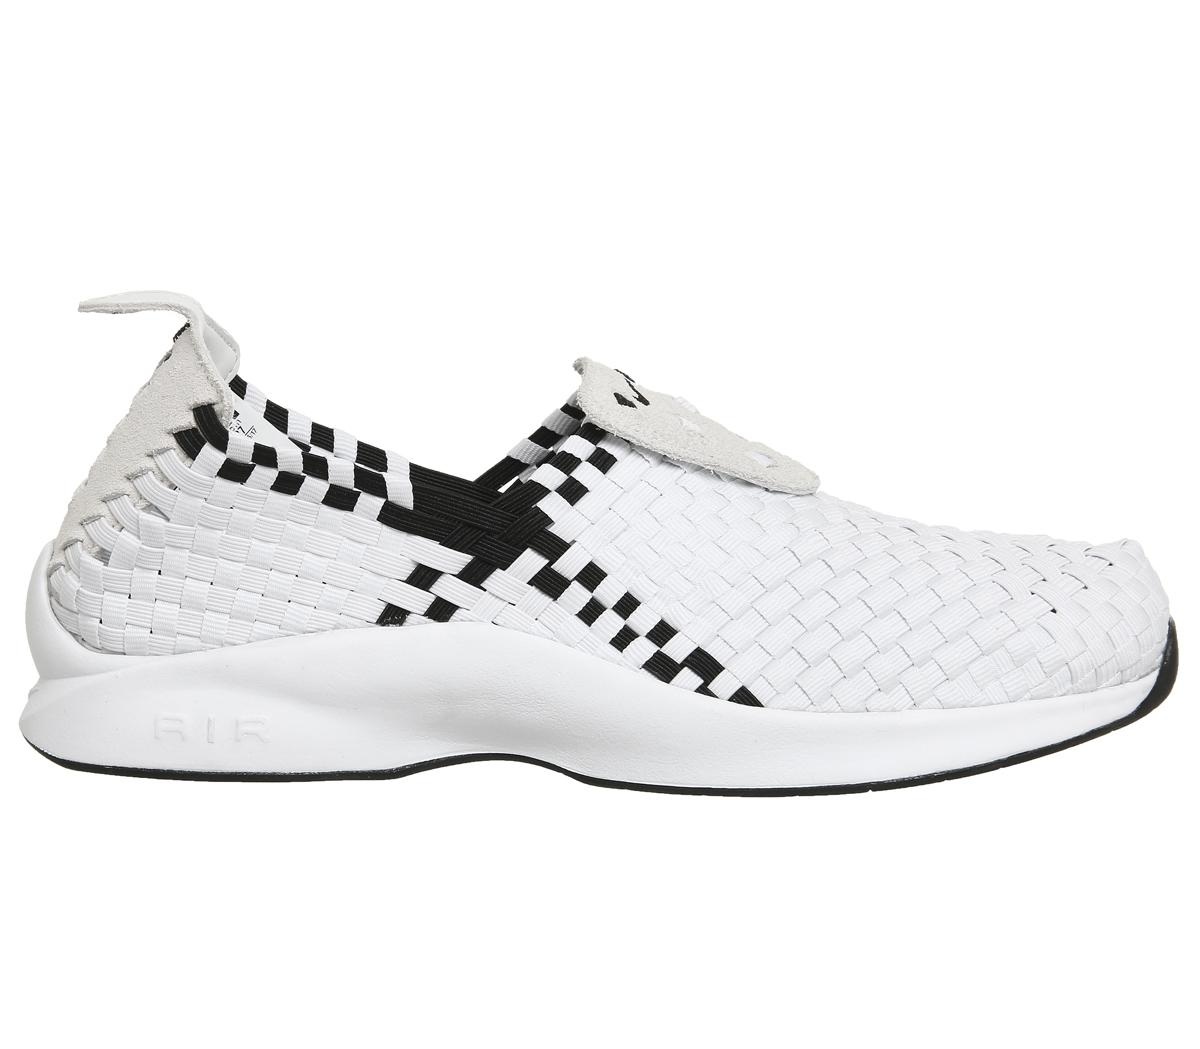 Nike Rubber Air Woven Trainers in White Black (White) for Men